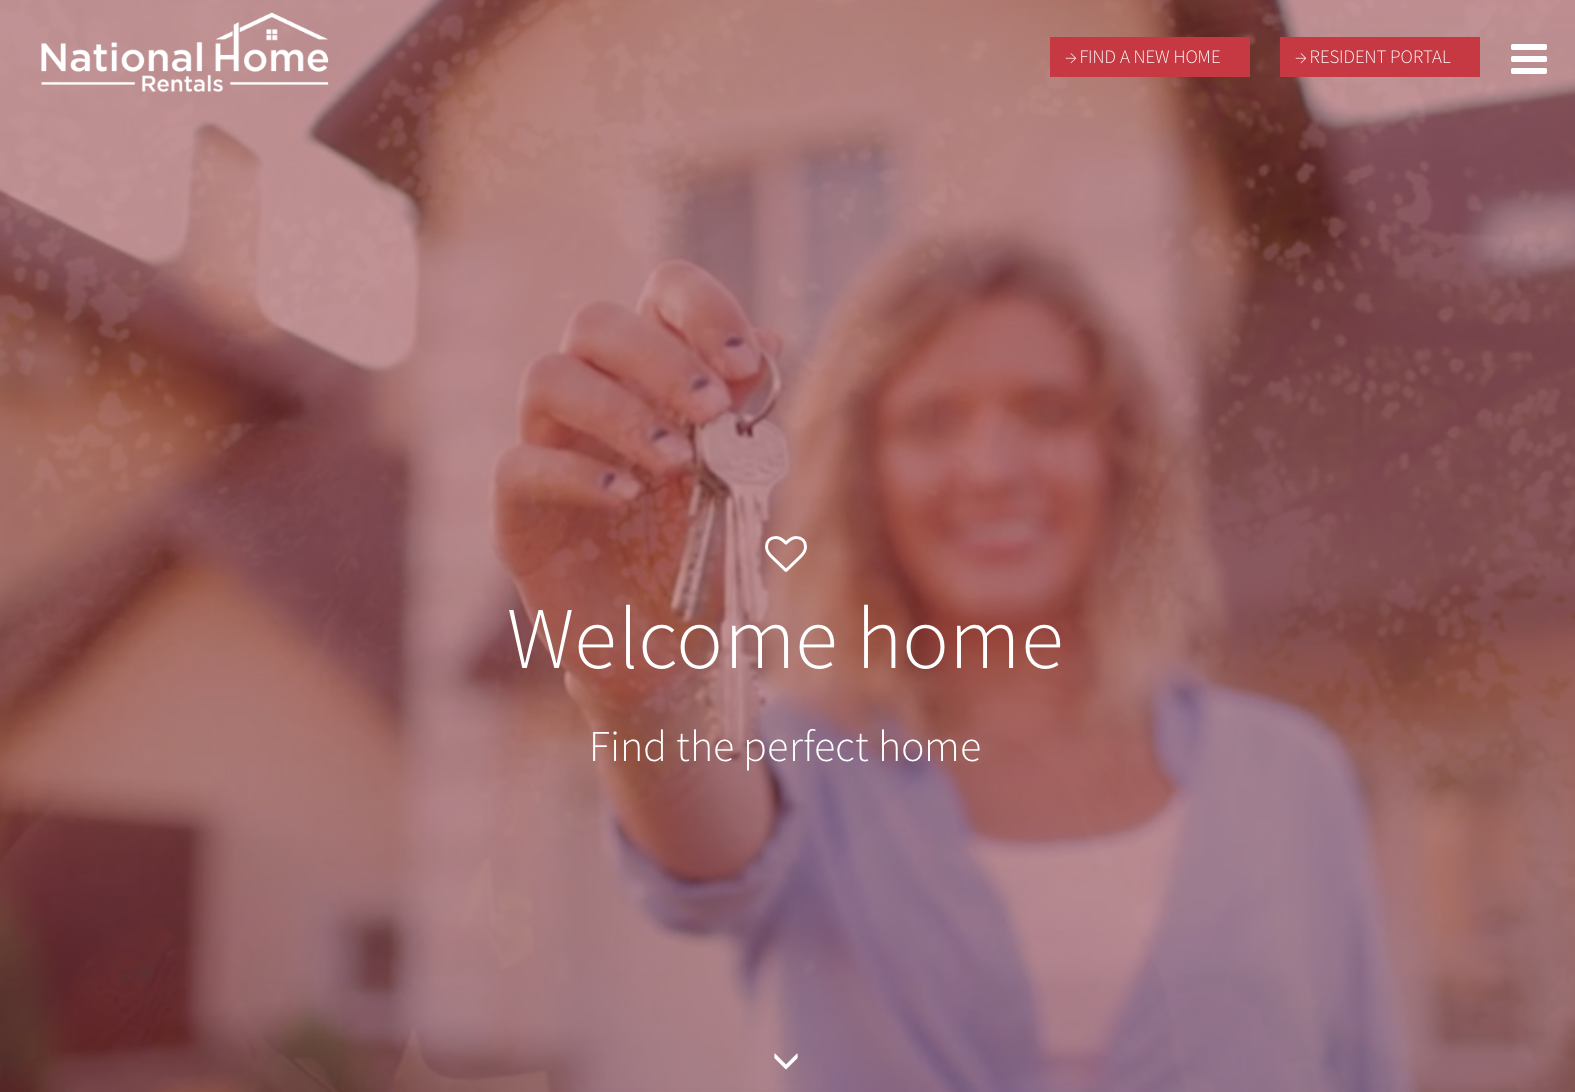 responsive website design for National Home Rentals